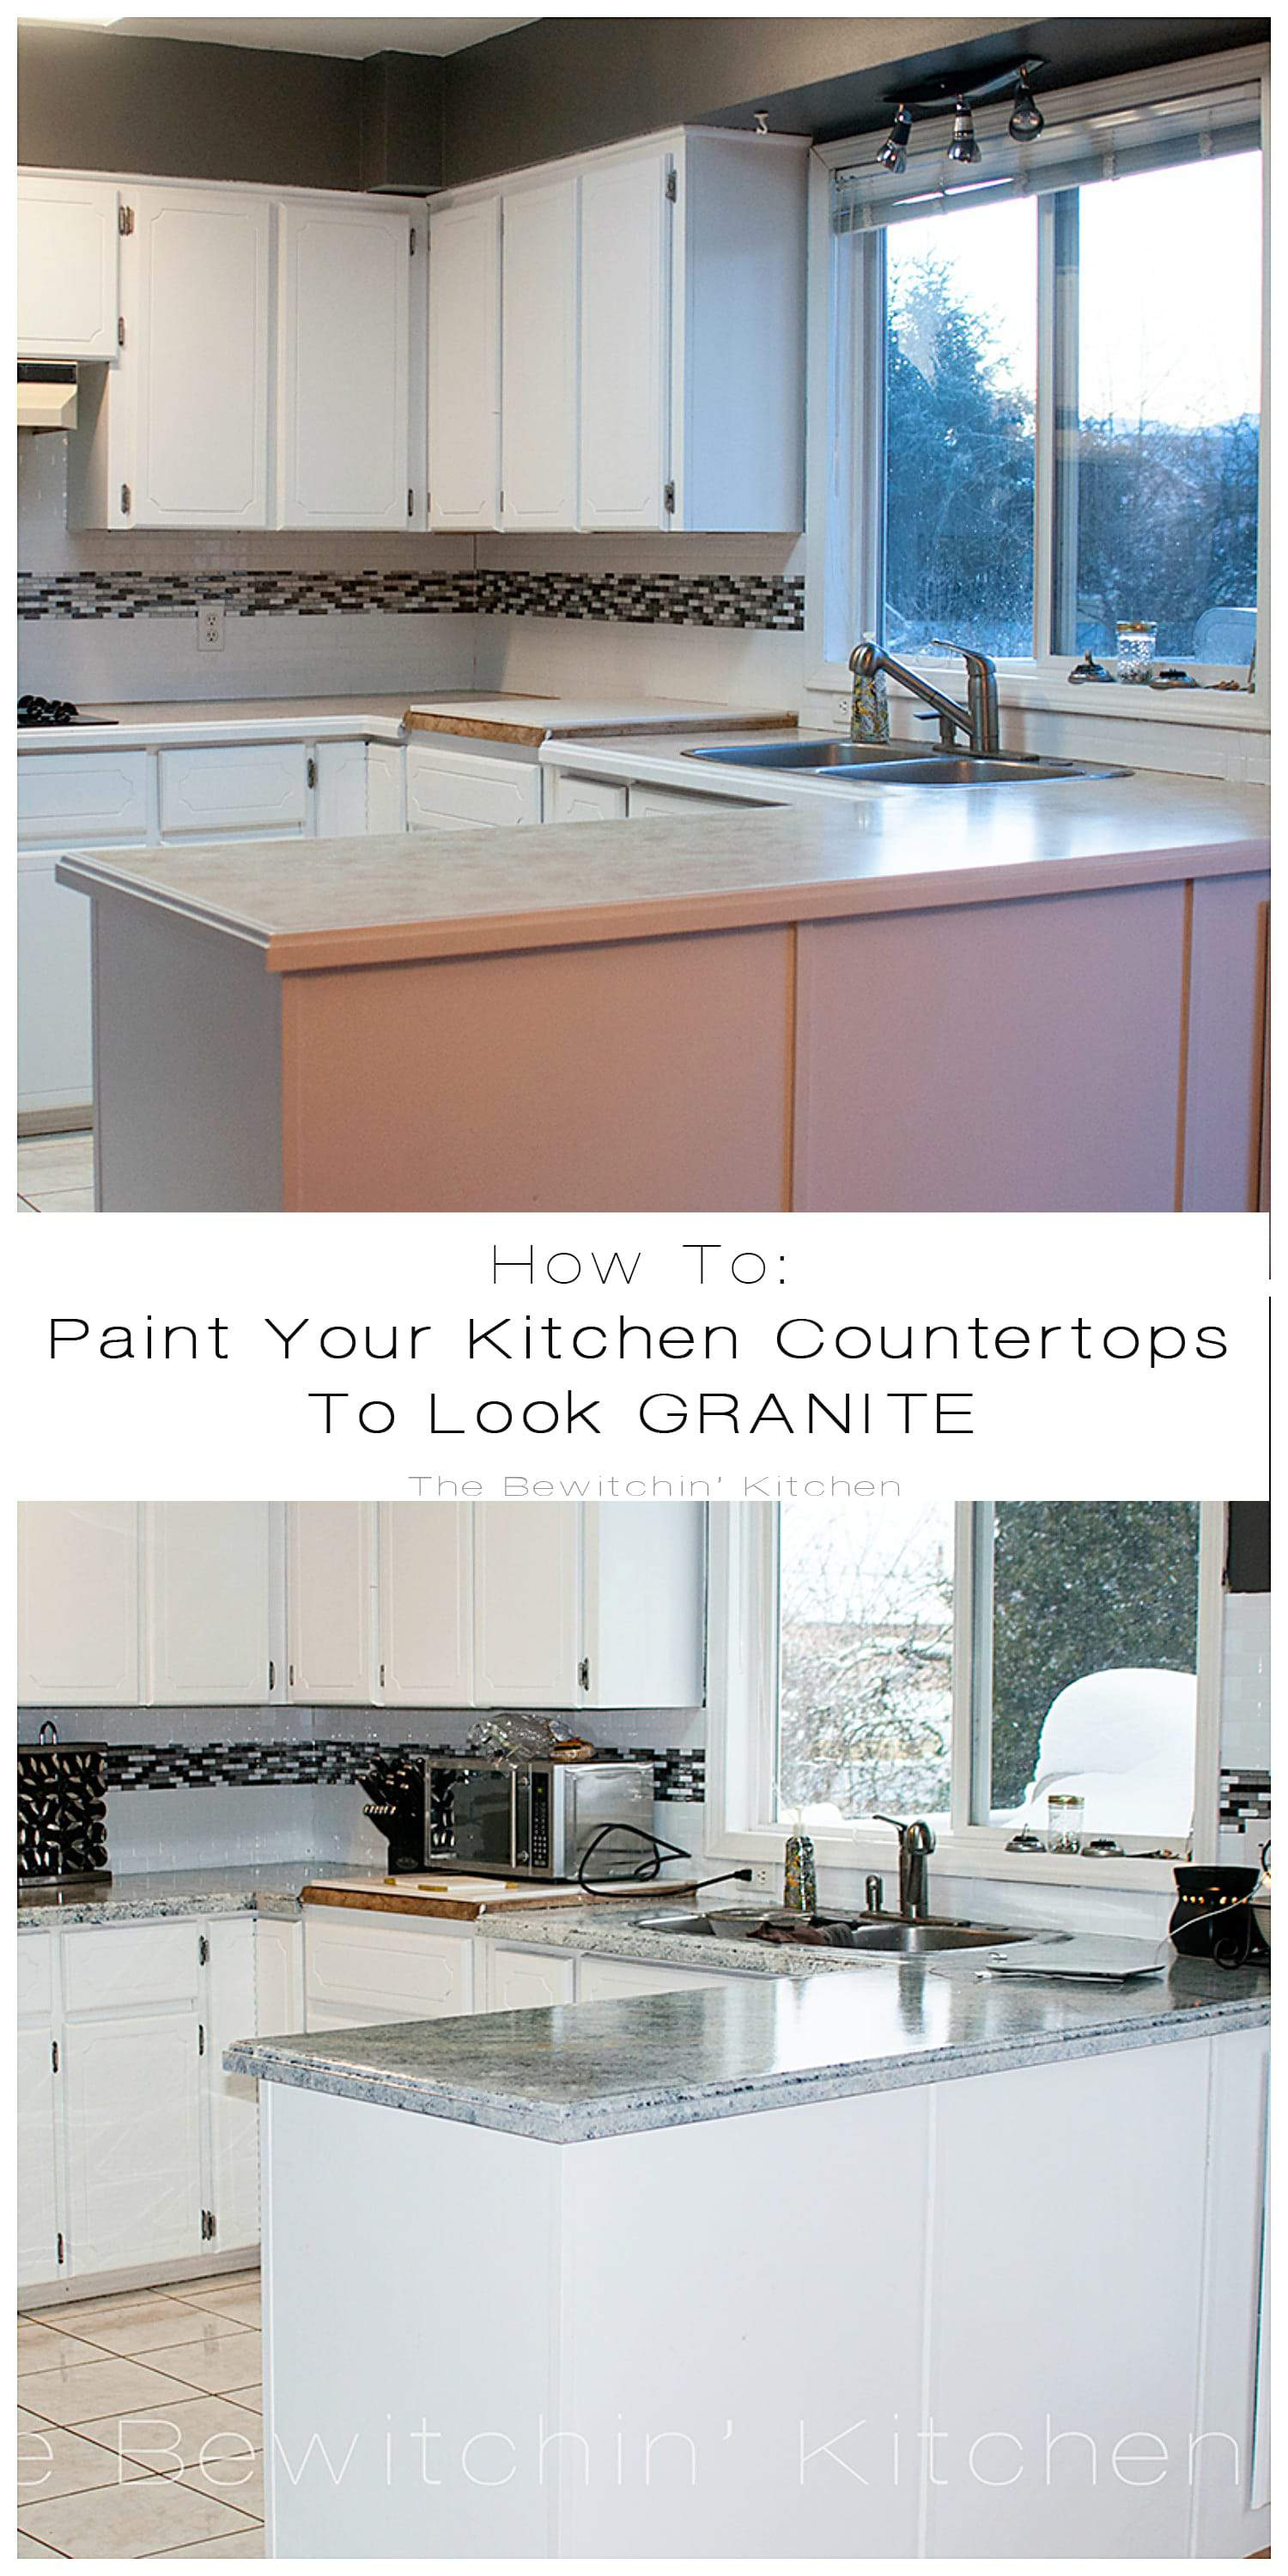 Paint For Countertops That Looks Like Granite Painting Kitchen Countertops With Giani Granite The